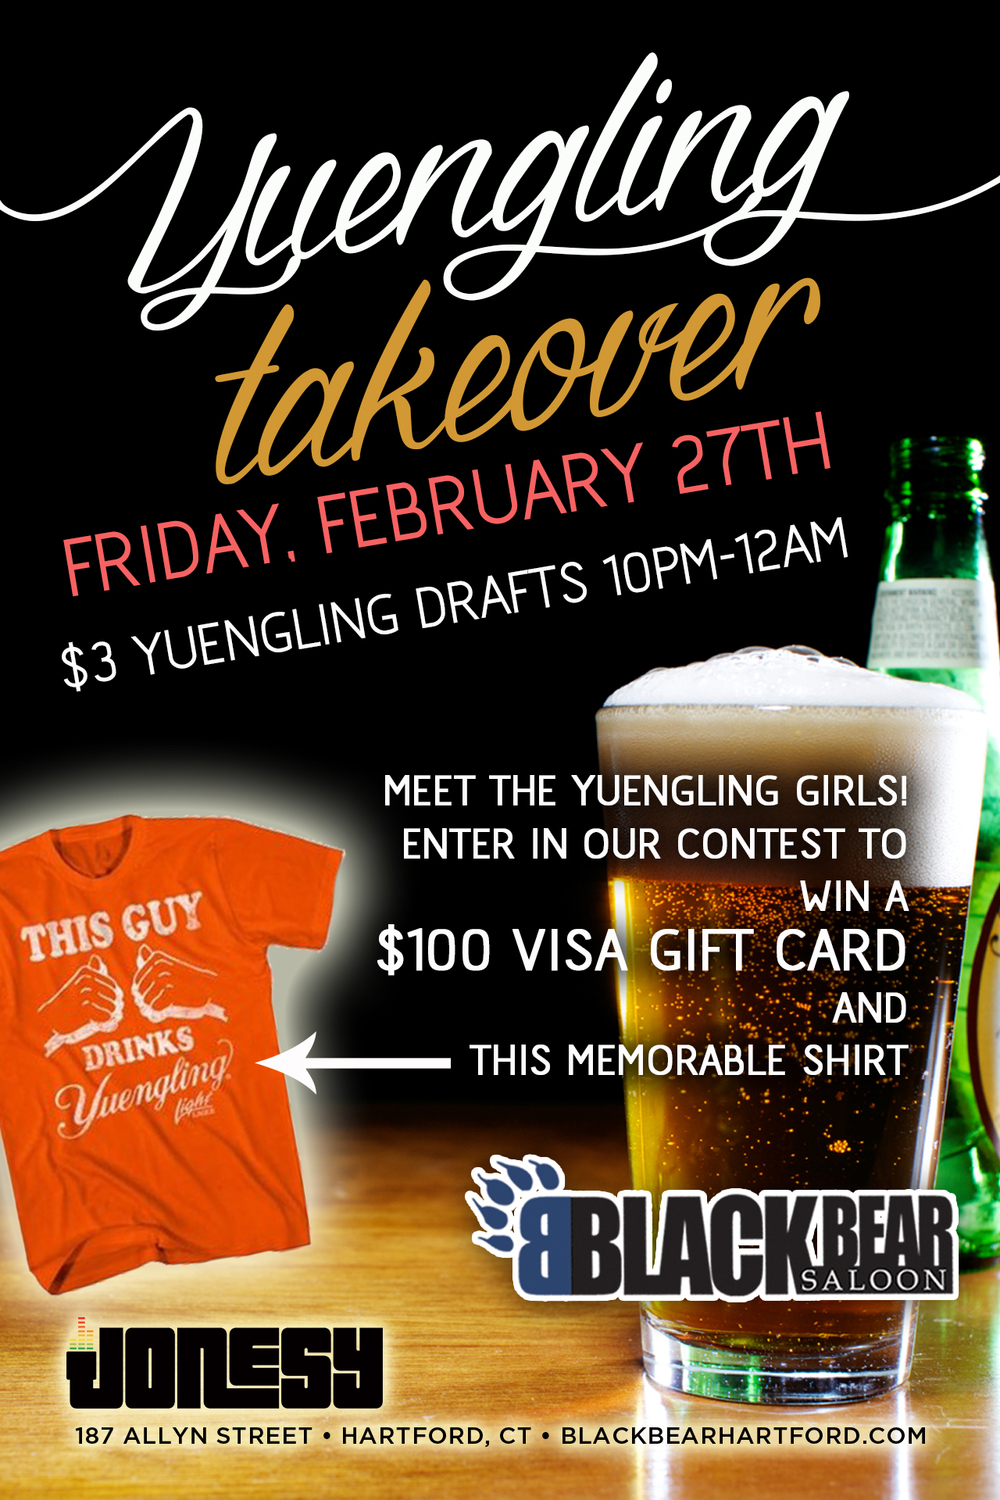 Friday, February 27th we bring the party to   Black Bear   for the YUENGLING TAKEOVER.  Music by yours truly starts at 9:30pm.  $3 Yuengling Drafts.   Meet the Yuengling Girls & Enter for a chance to win $100 Visa GIft Card + Yuengling T-Shirt!  Meet us there!